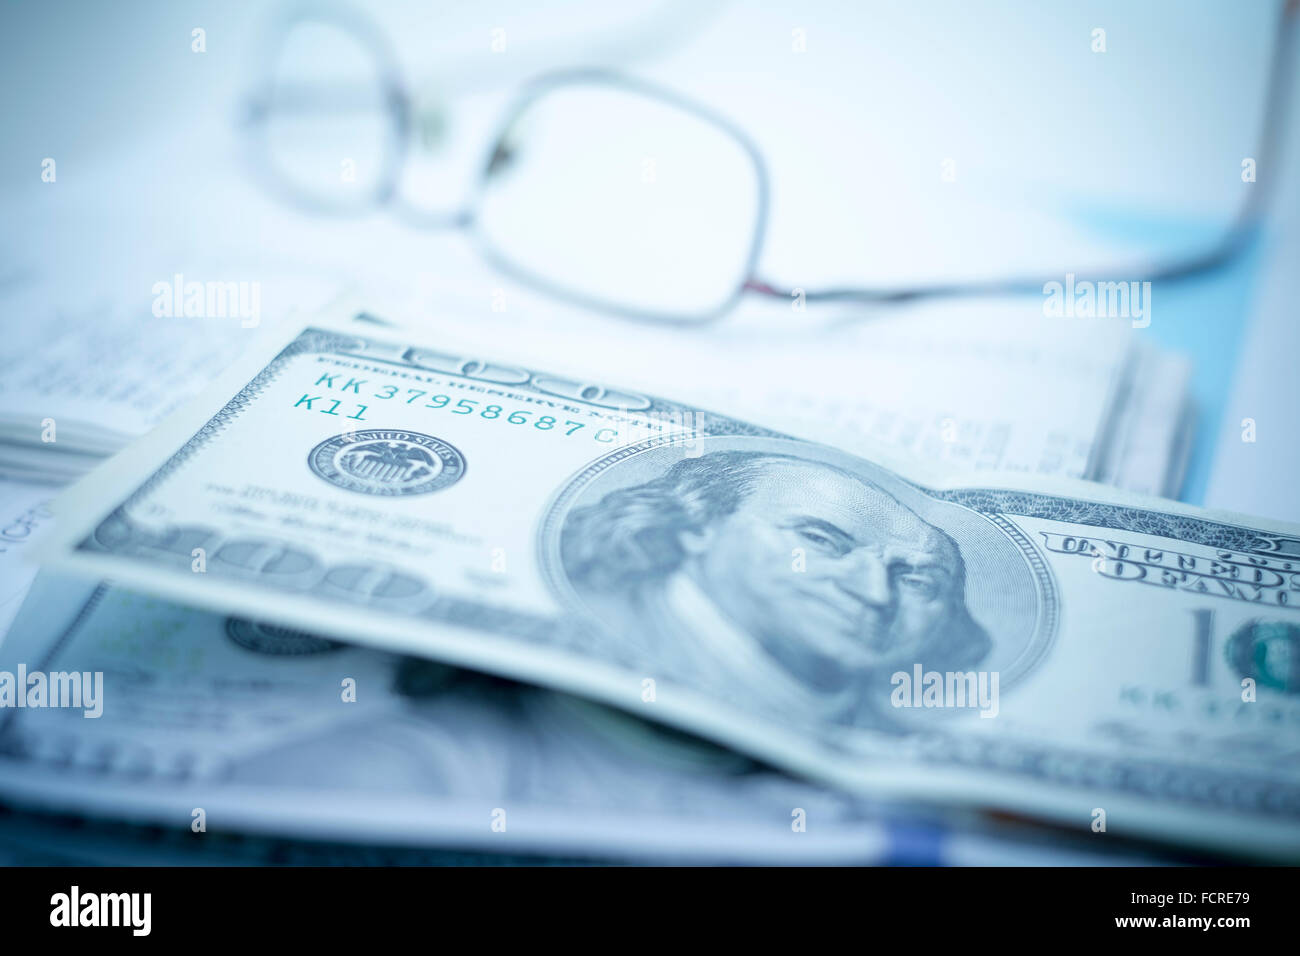 Glasses with money and receipts on a desk - Stock Image